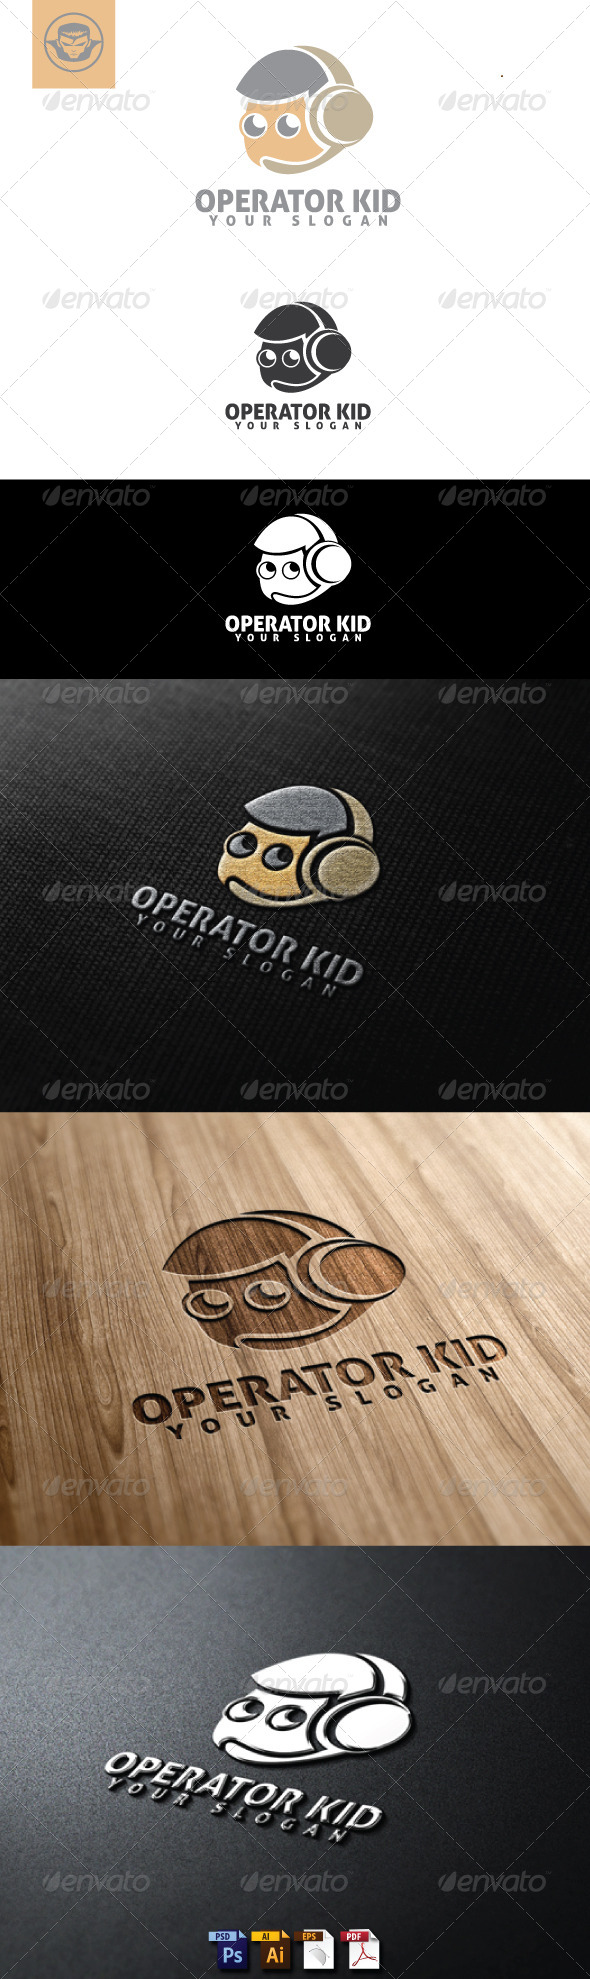 Operator Kid Logo Template - Humans Logo Templates